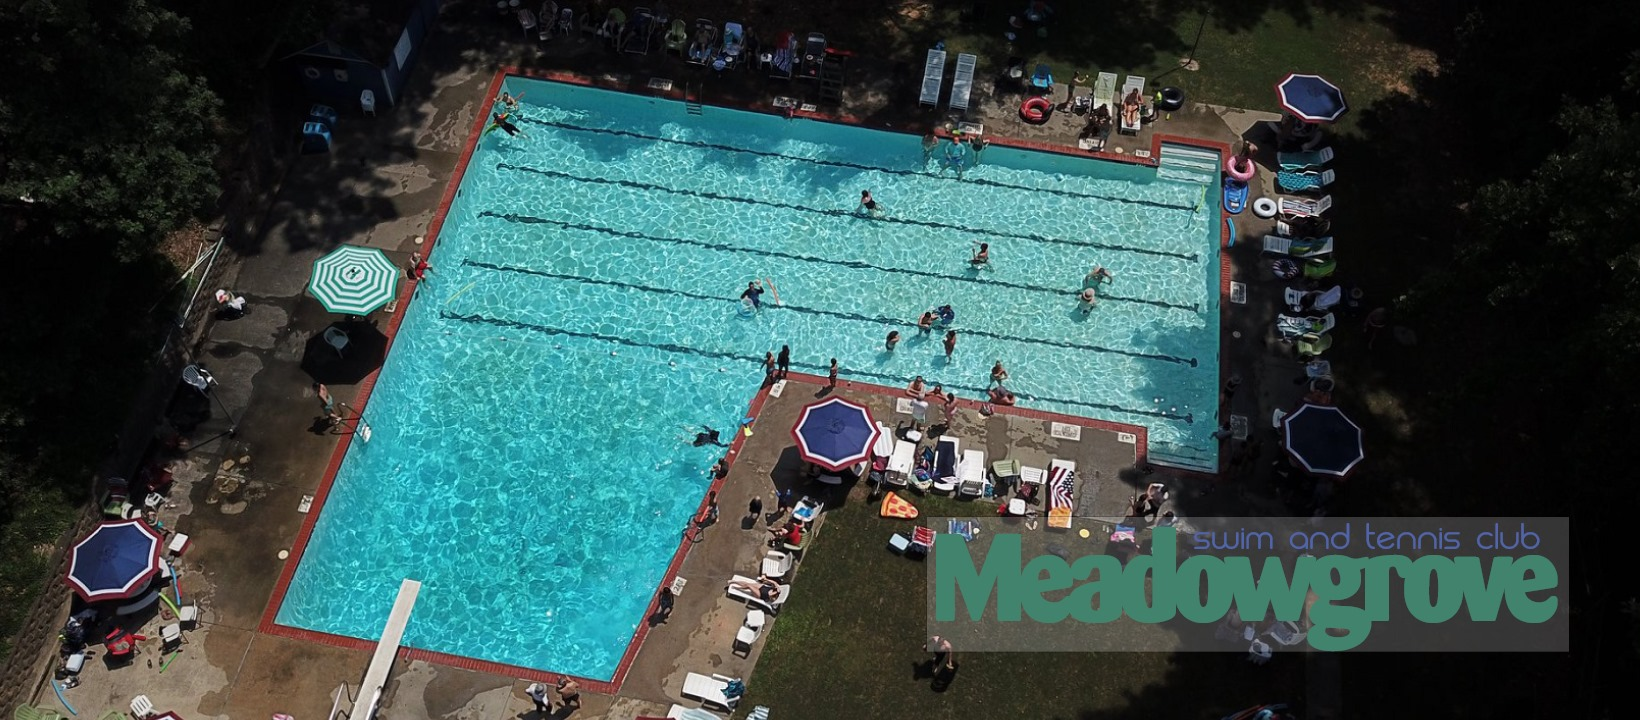 Meadowgrove Swim & Tennis Club - Aerial view